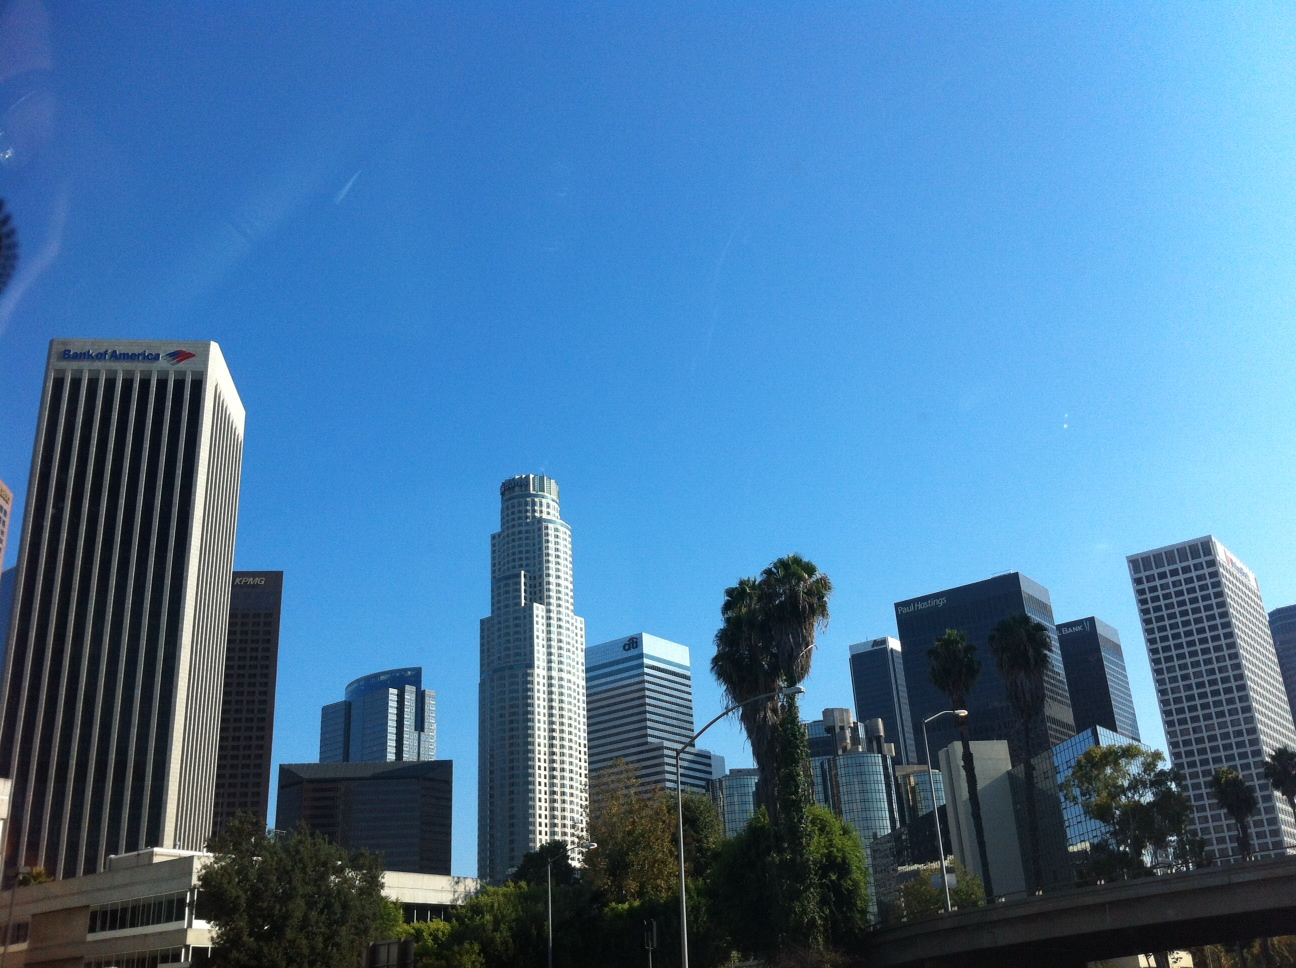 Edificios del downtown de Los Angeles. California